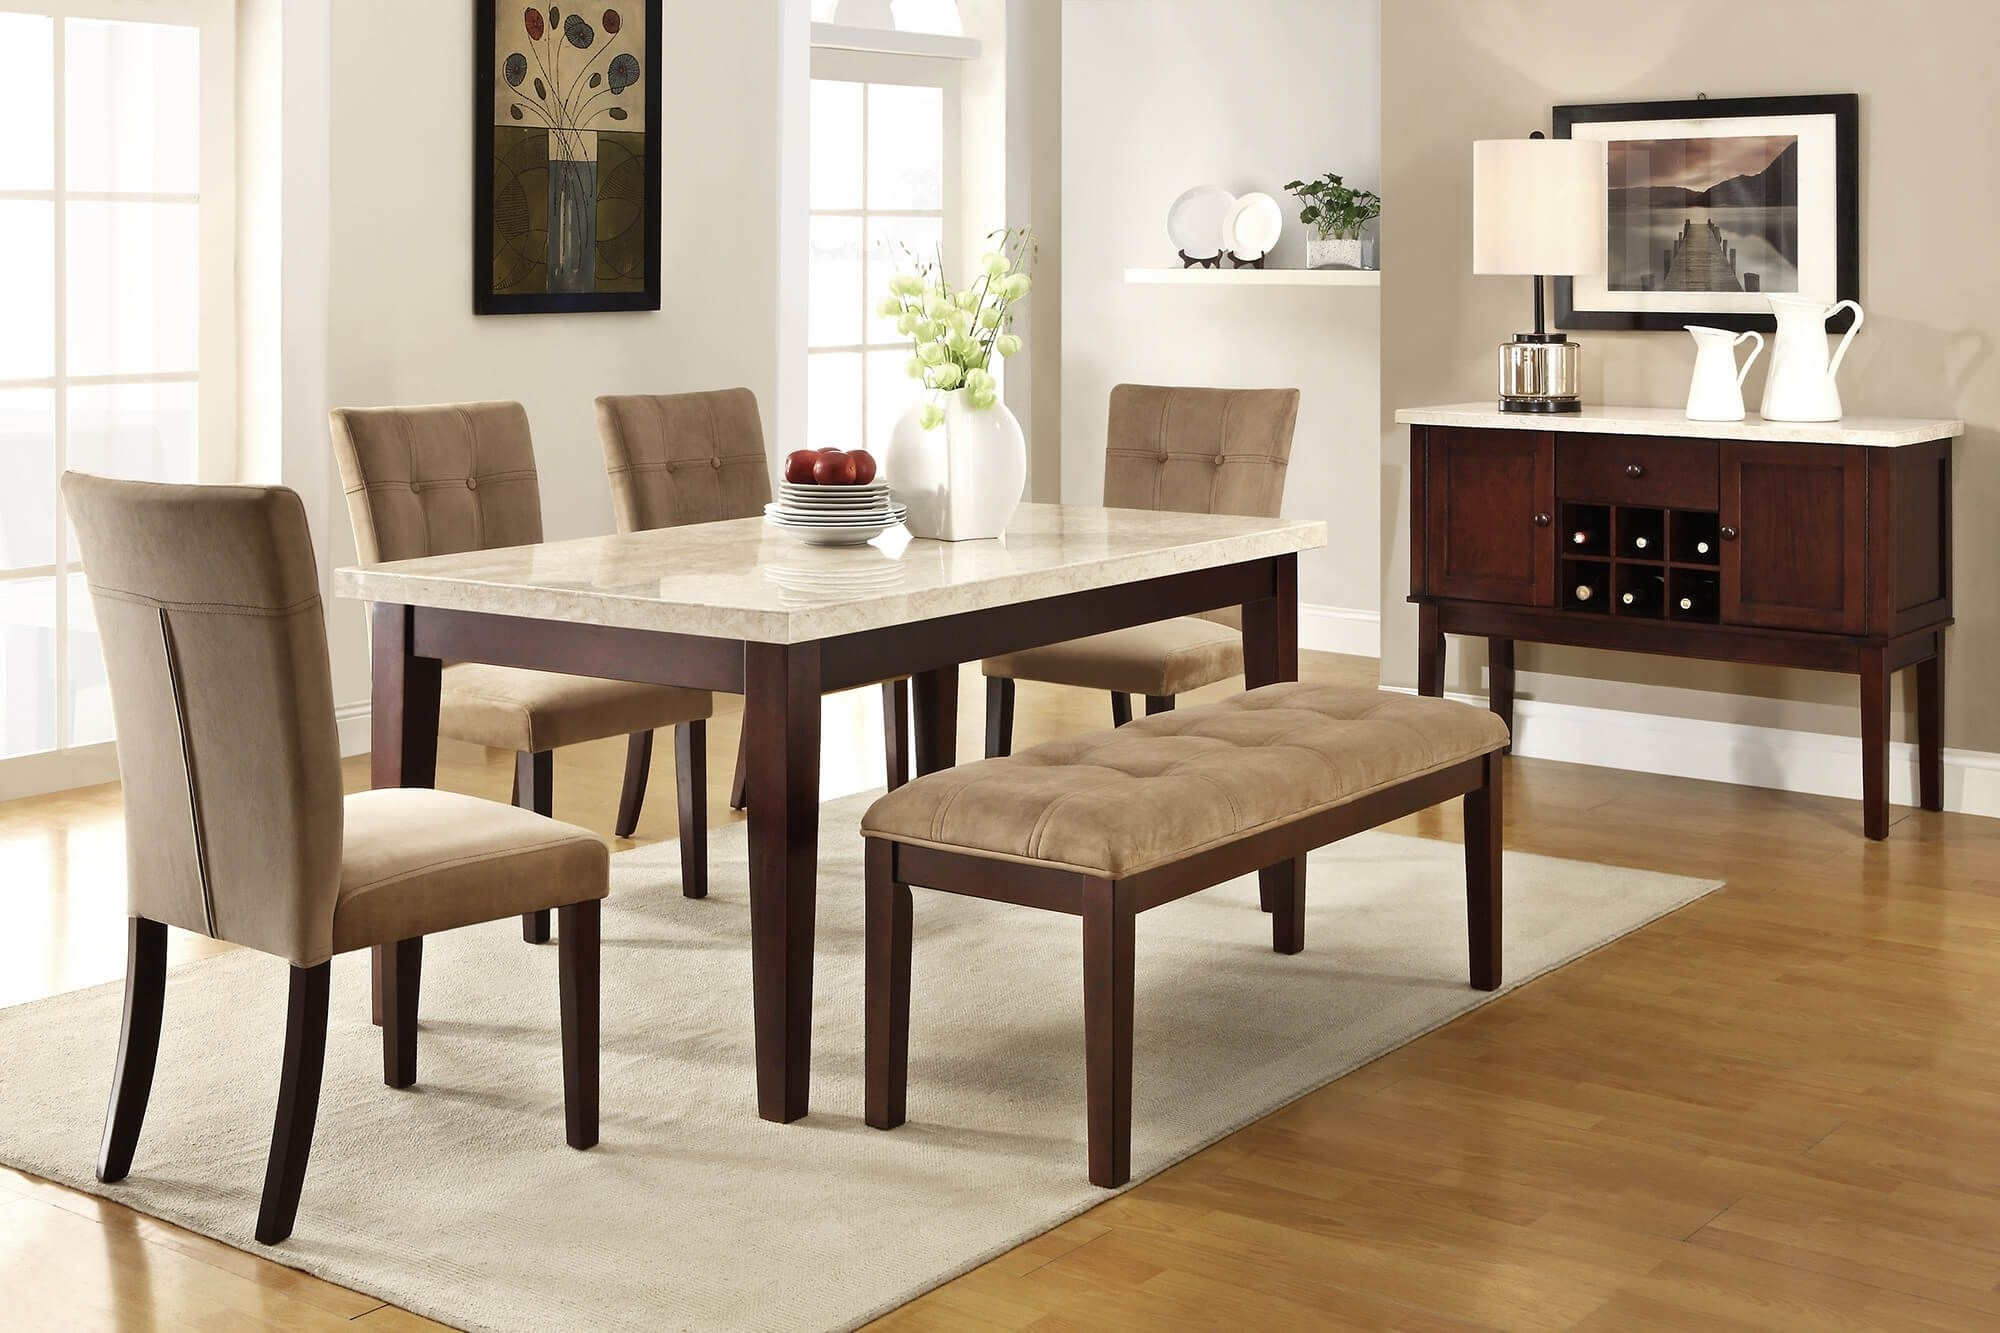 26 Dining Room Sets (Big And Small) With Bench Seating (2018) | Home In Most Up To Date Palazzo 7 Piece Dining Sets With Pearson White Side Chairs (Image 2 of 20)